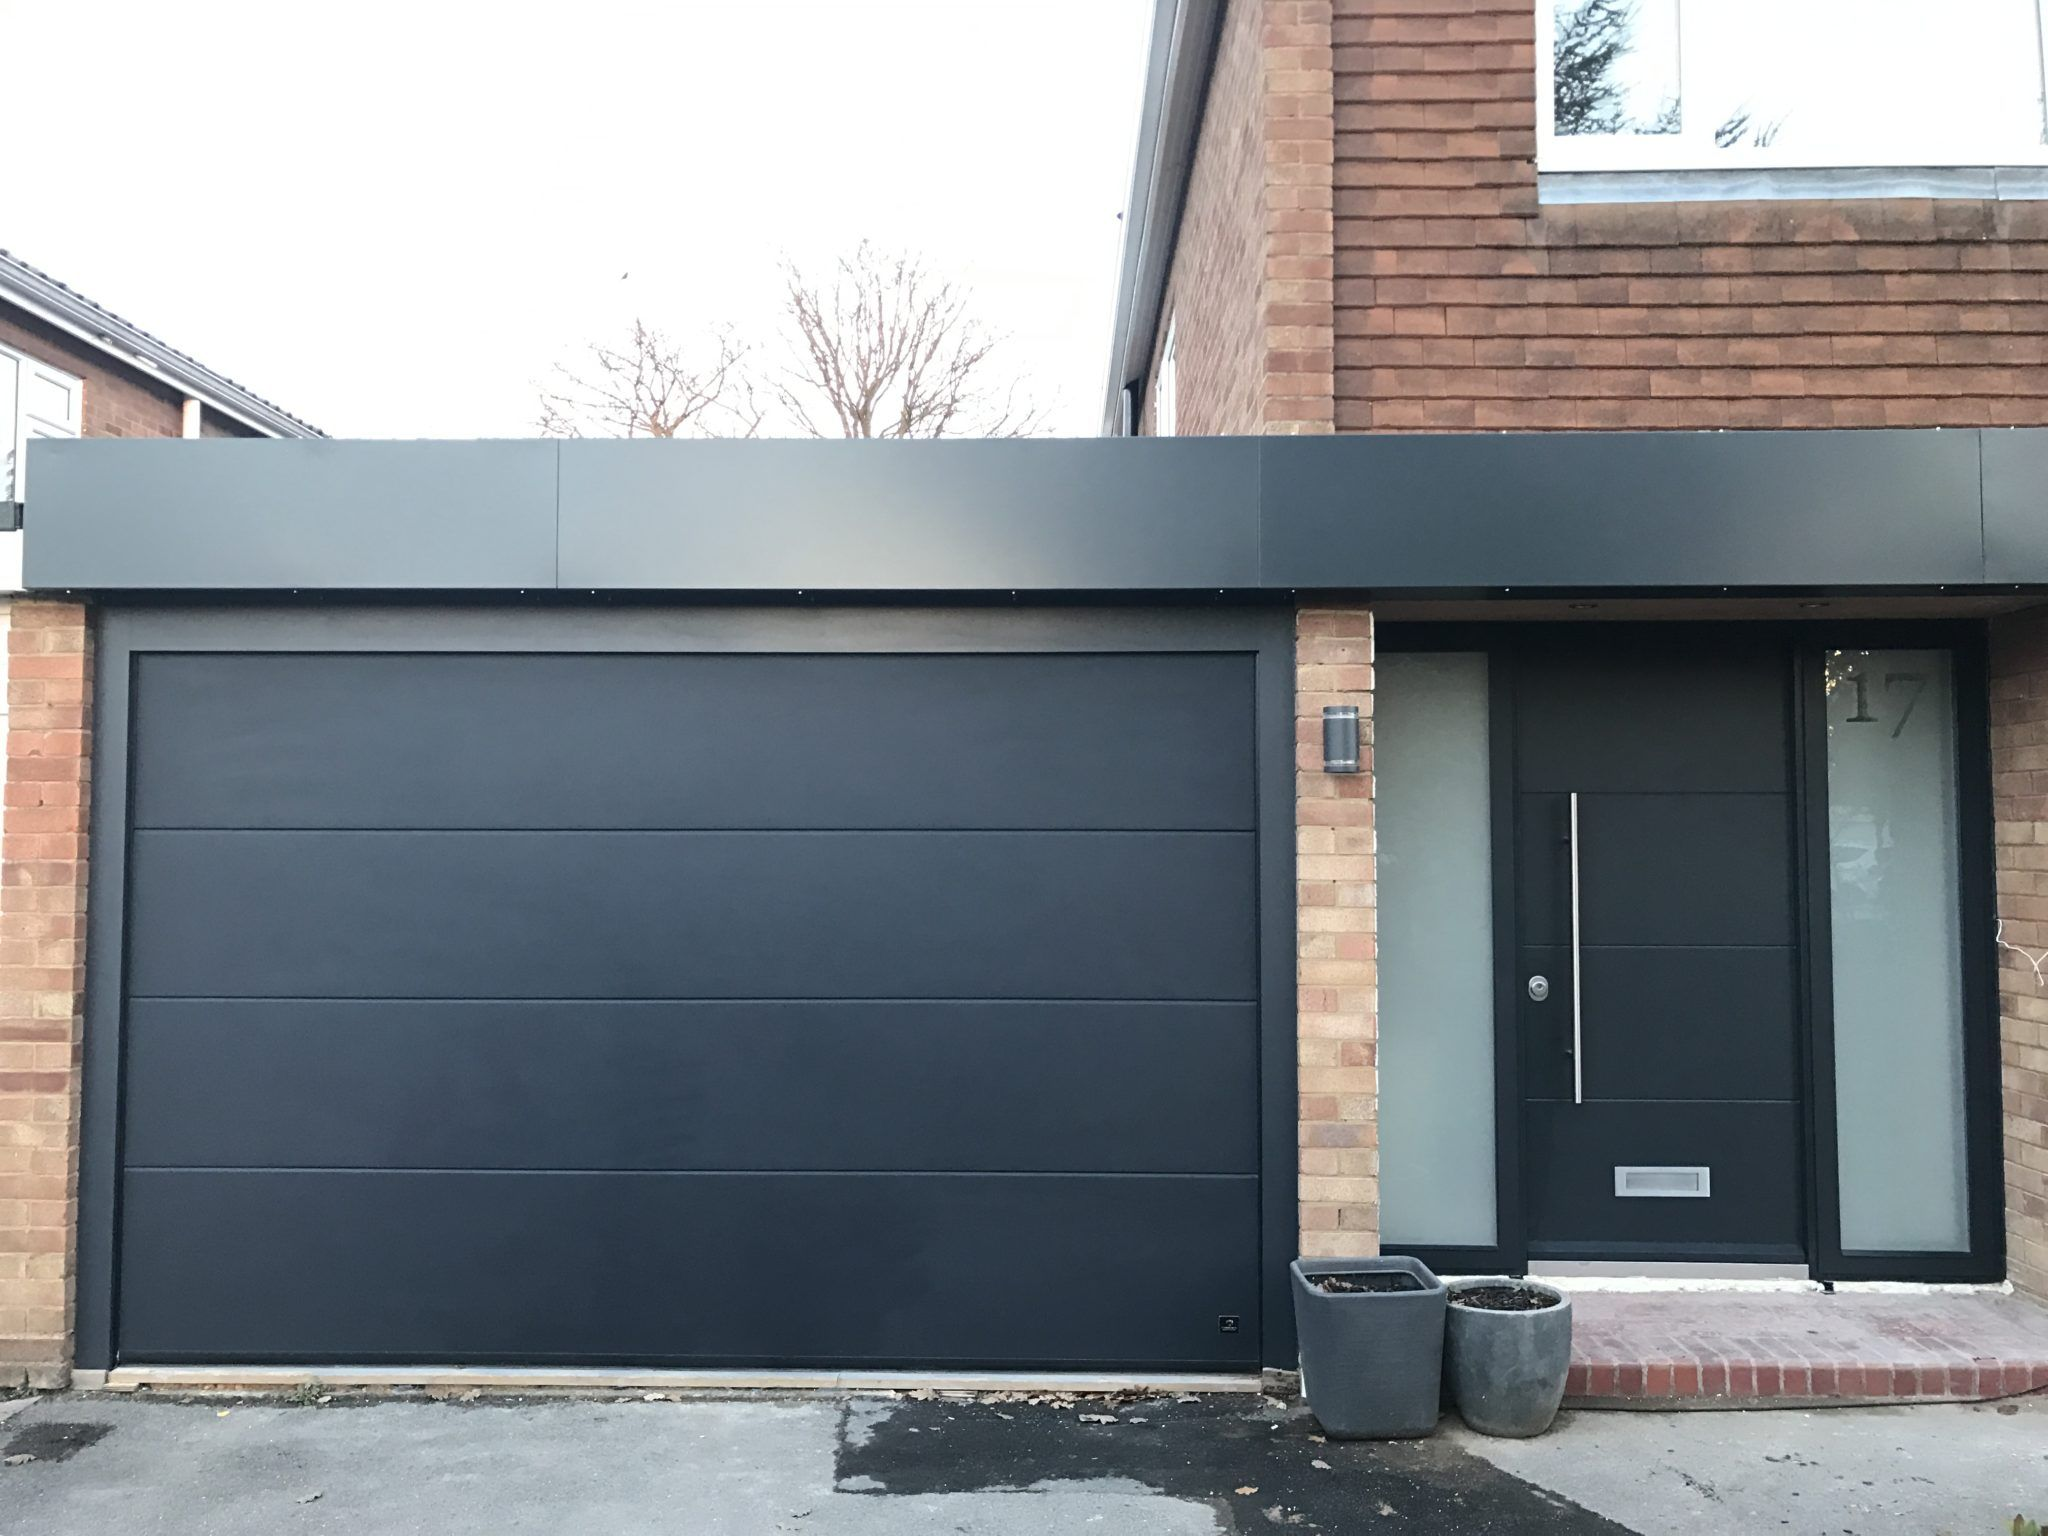 Doors With A Personal Touch Matching Design Entrance Garage Doors From One Manufacturer Garagedoors Entr Garage Door Design Garage Doors Garage Door Styles